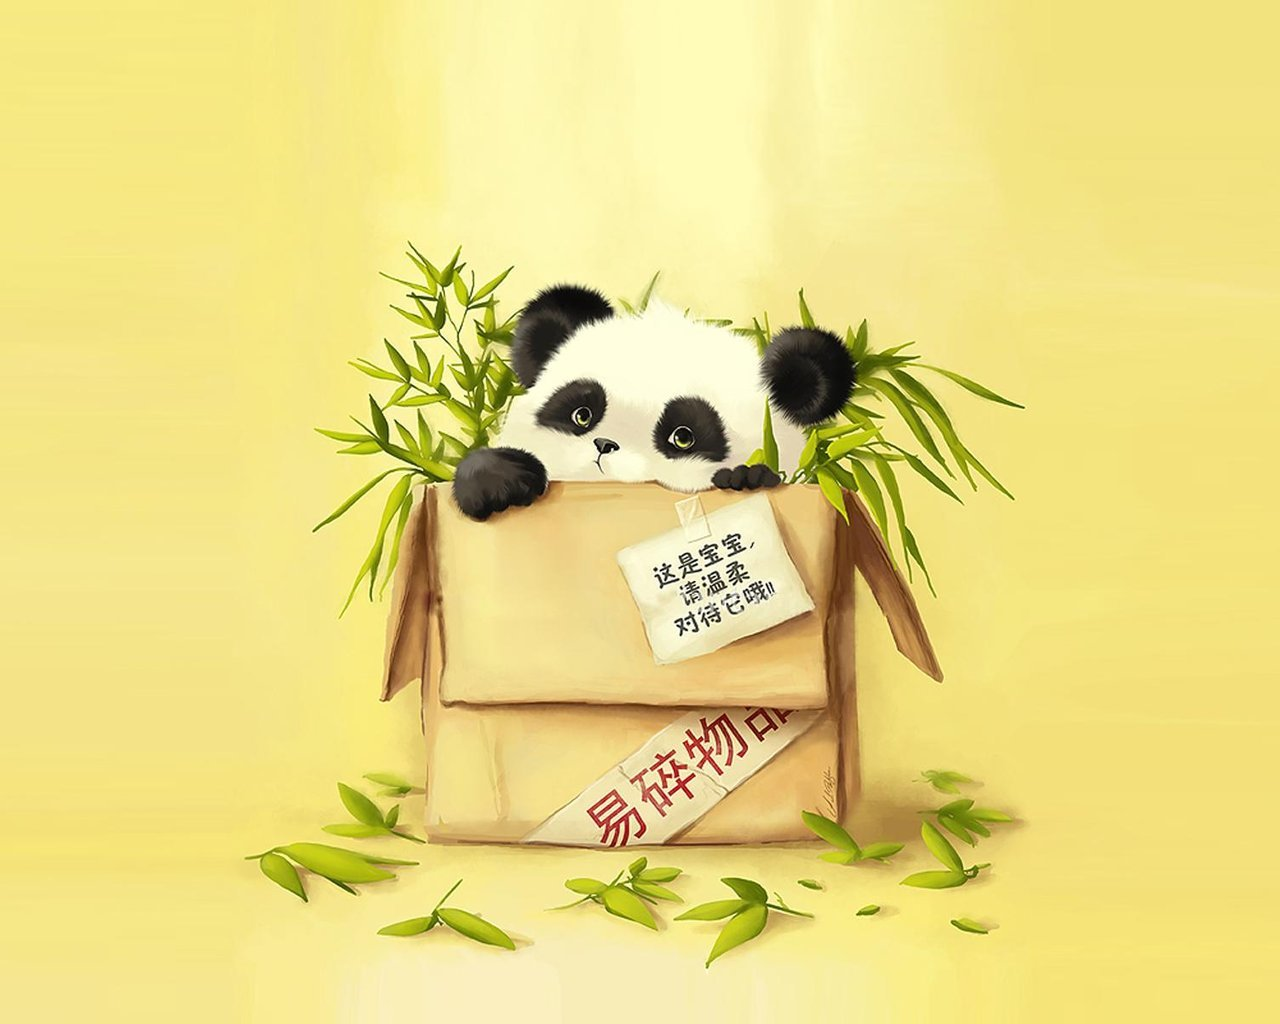 18073 download wallpaper Animals, Pictures, Pandas screensavers and pictures for free